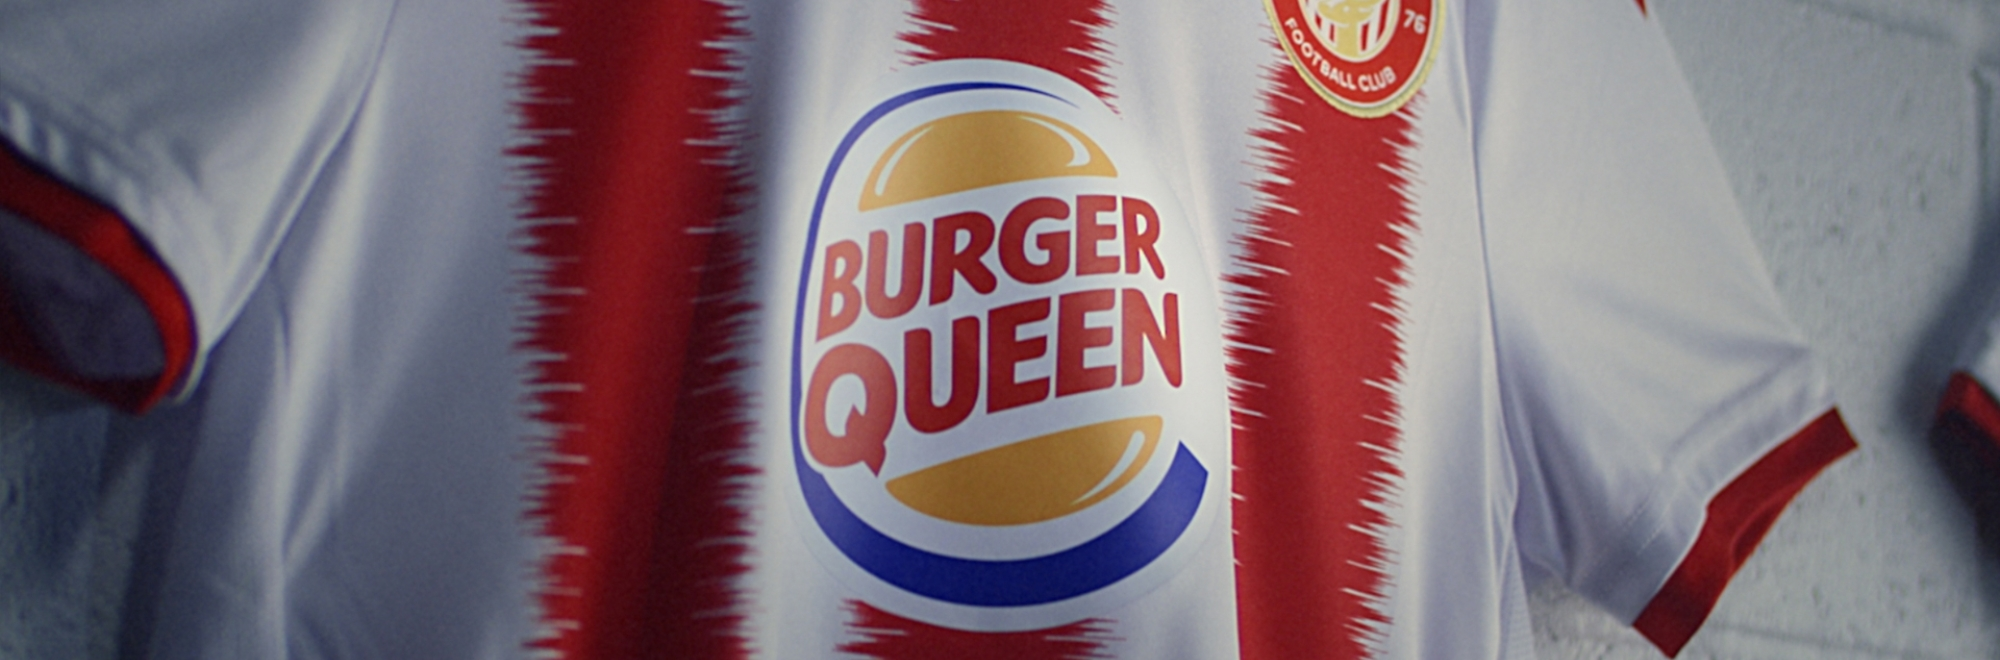 Burger King becomes Burger Queen to sponsor the female Stevenage FC team